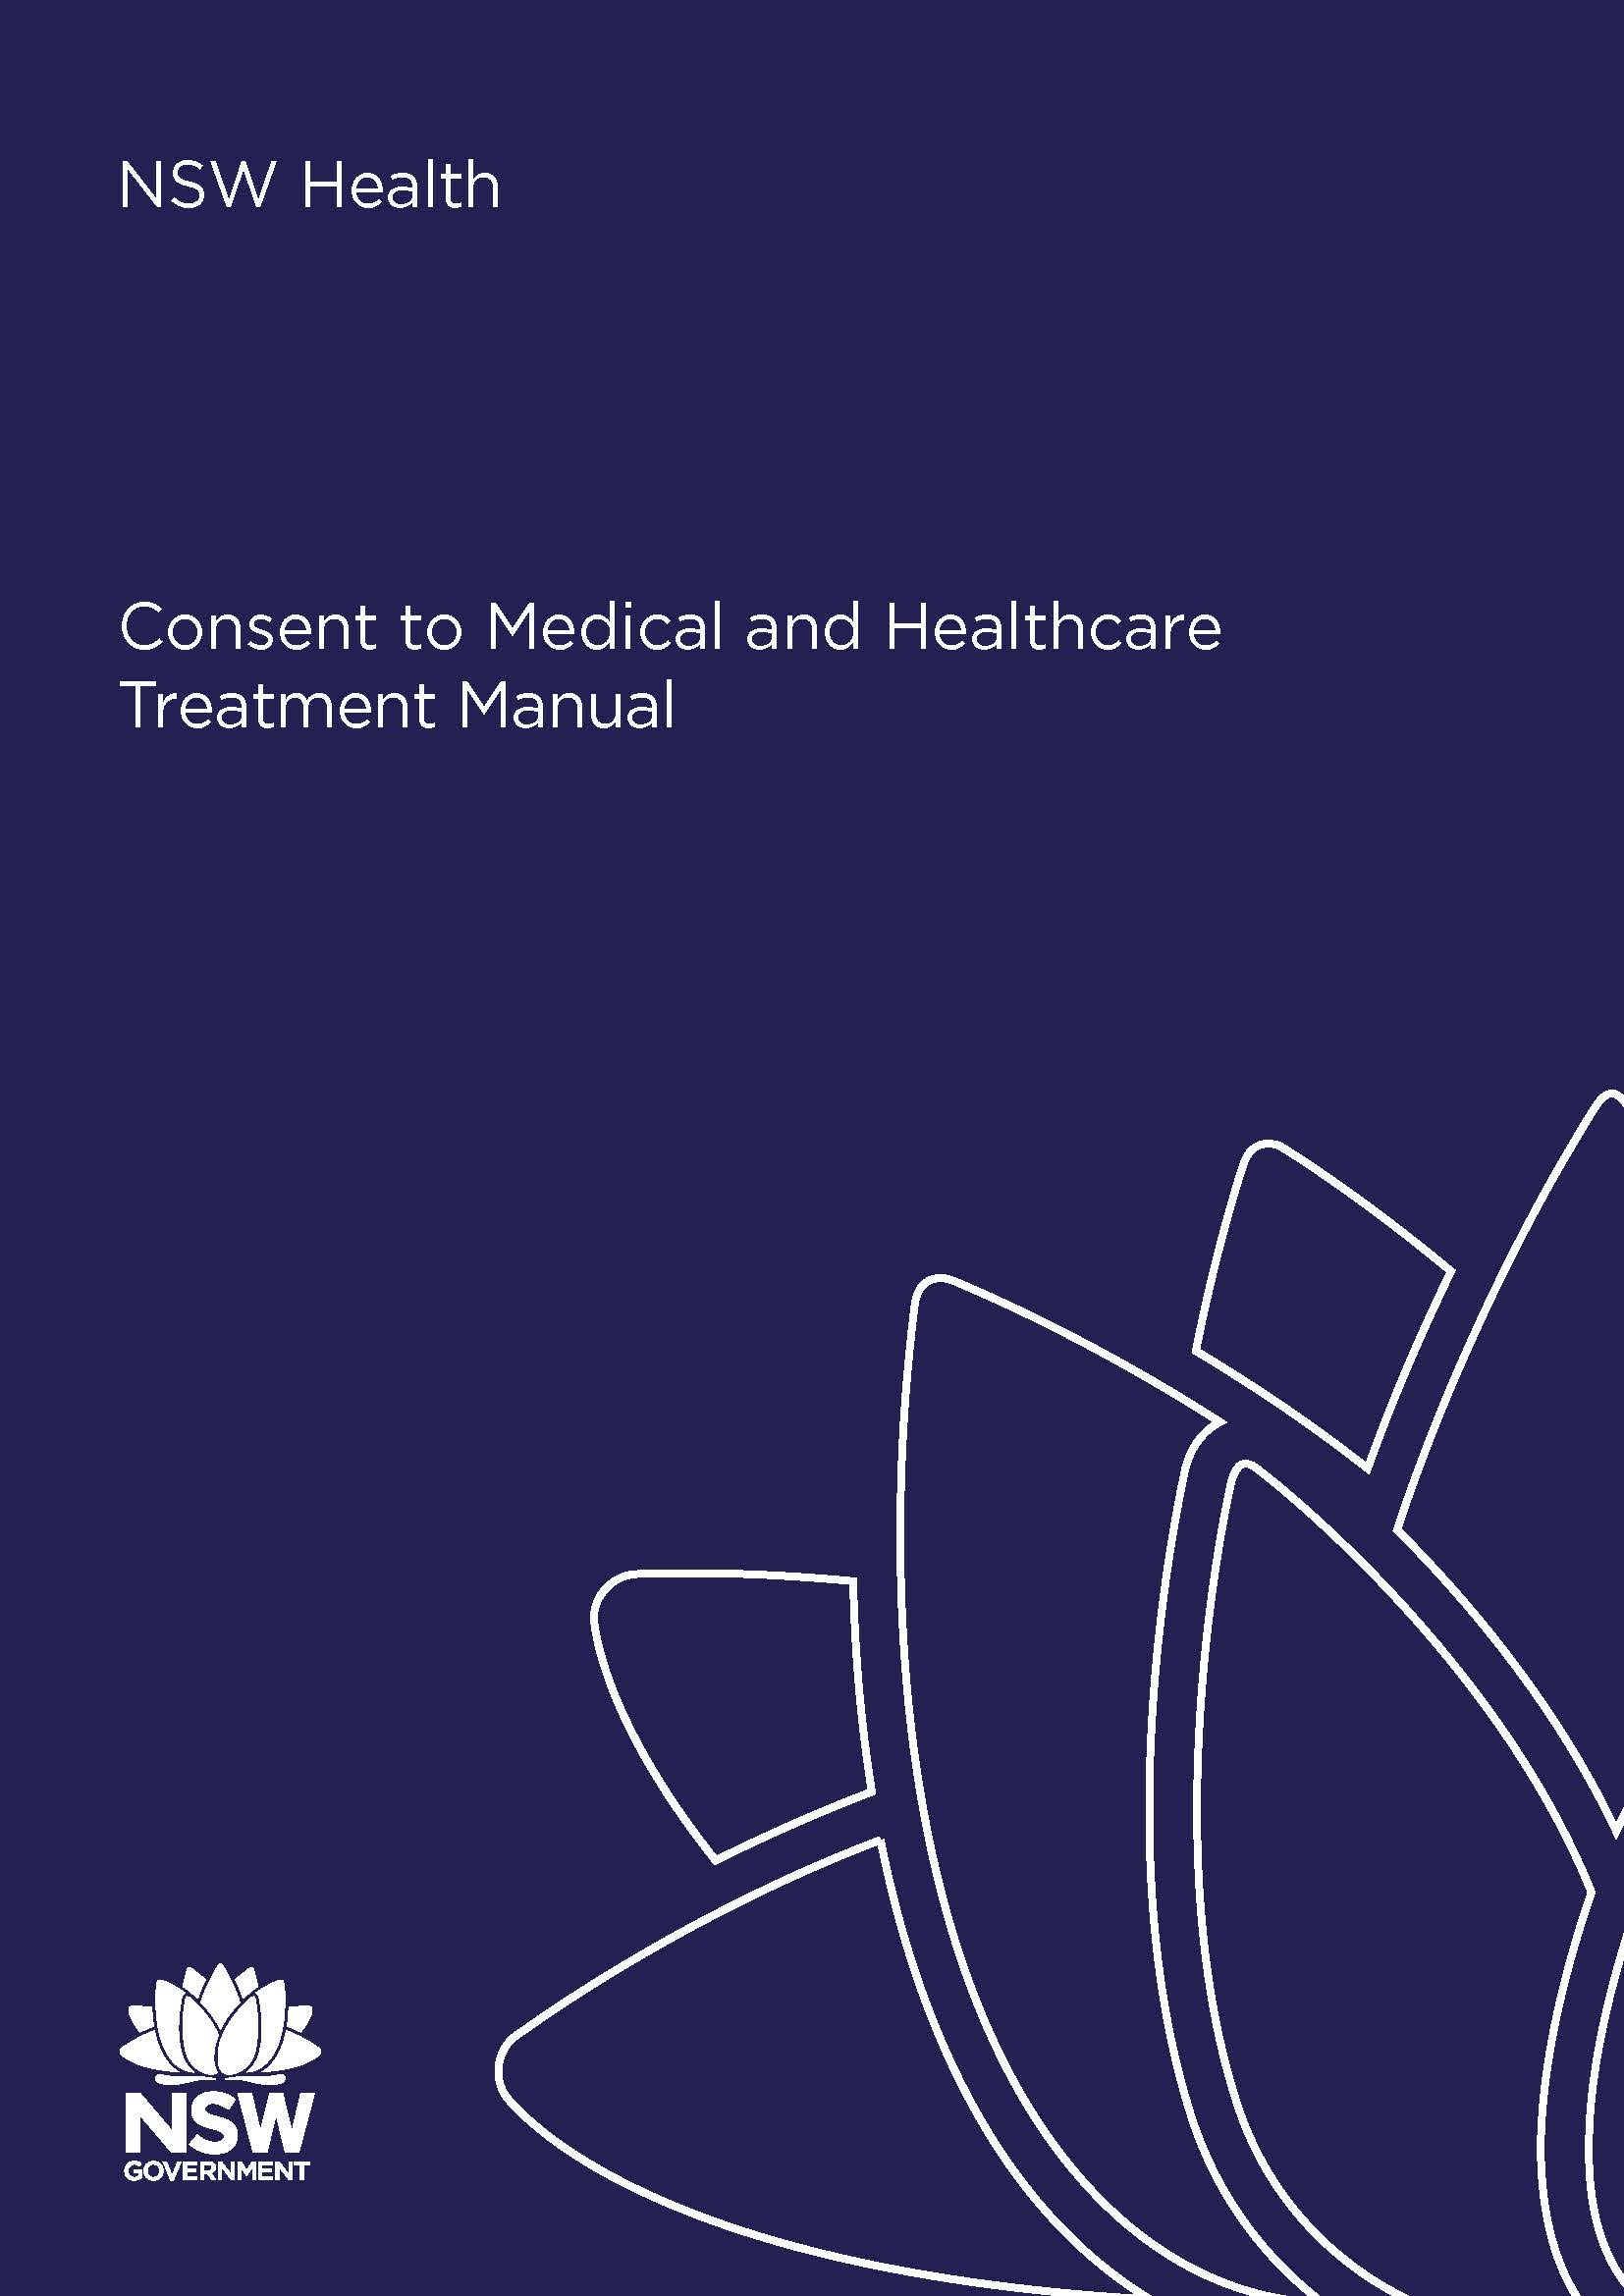 Consent to Medical and Healthcare Treatment